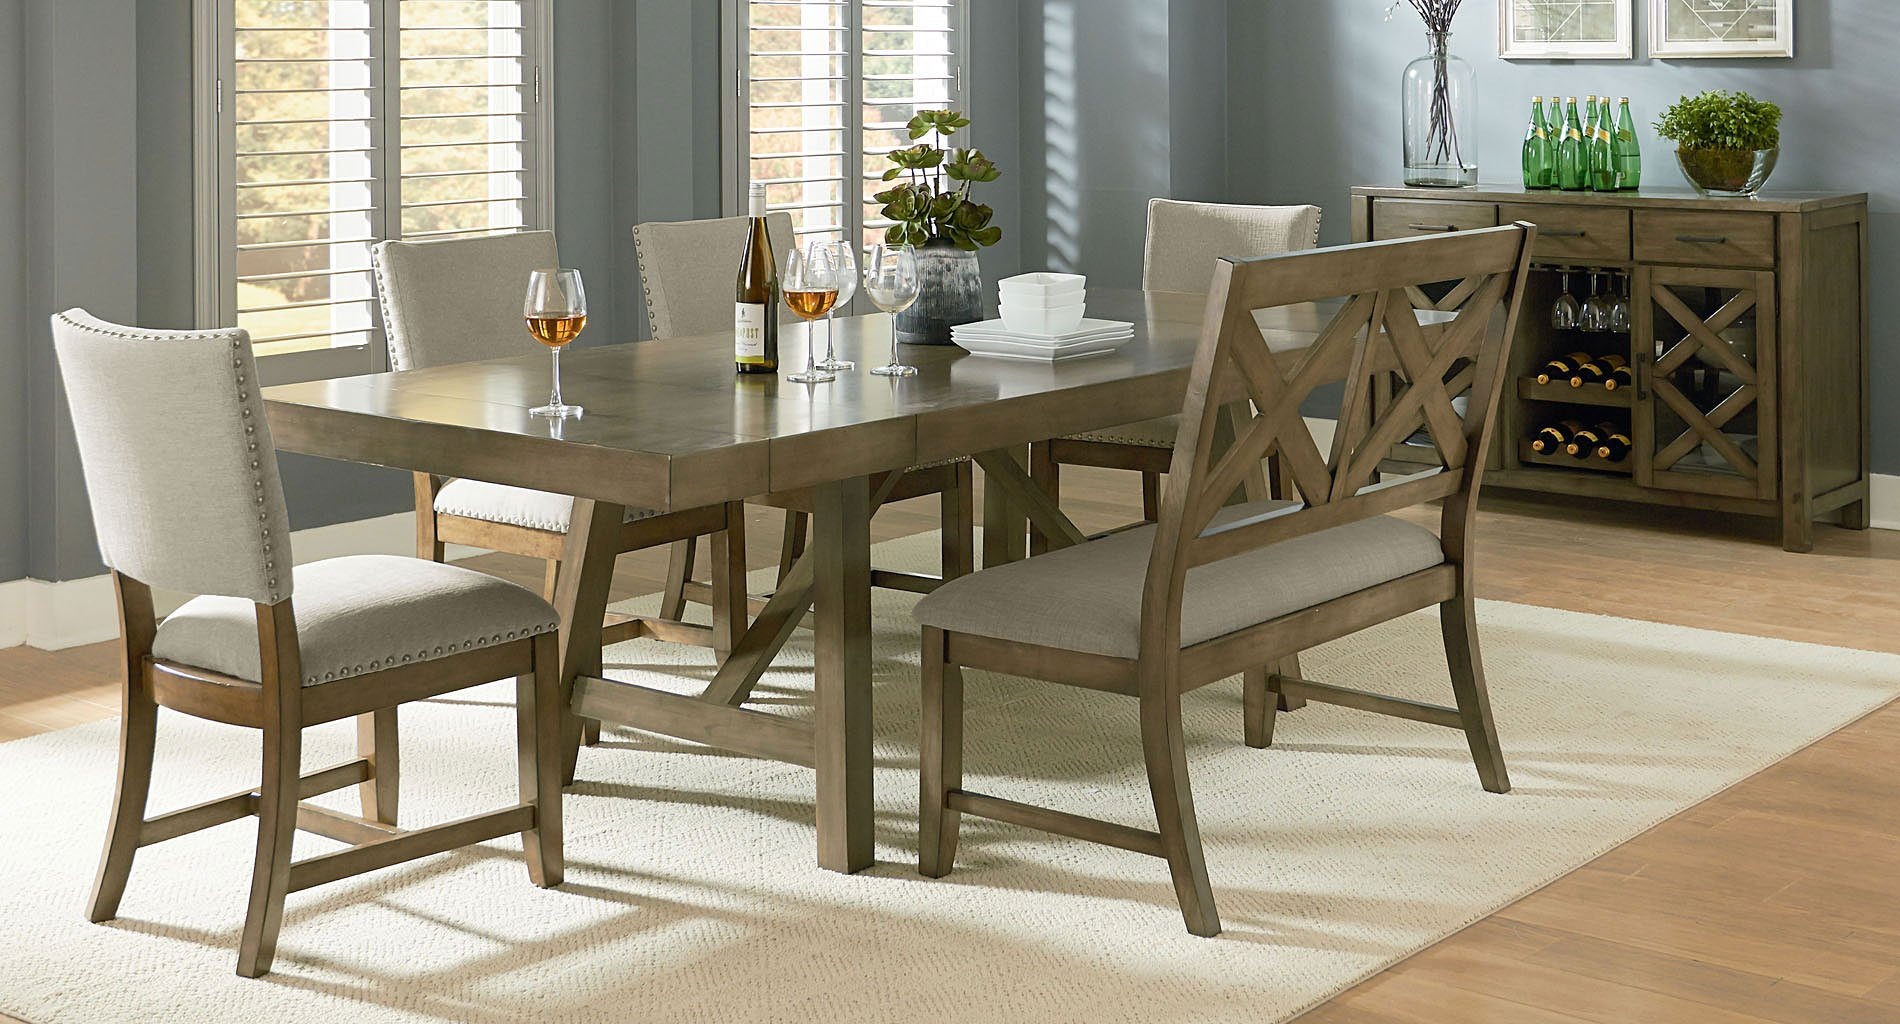 Dining Room Upholstered Chairs Omaha Dining Room Set W Bench And Upholstered Chairs Grey